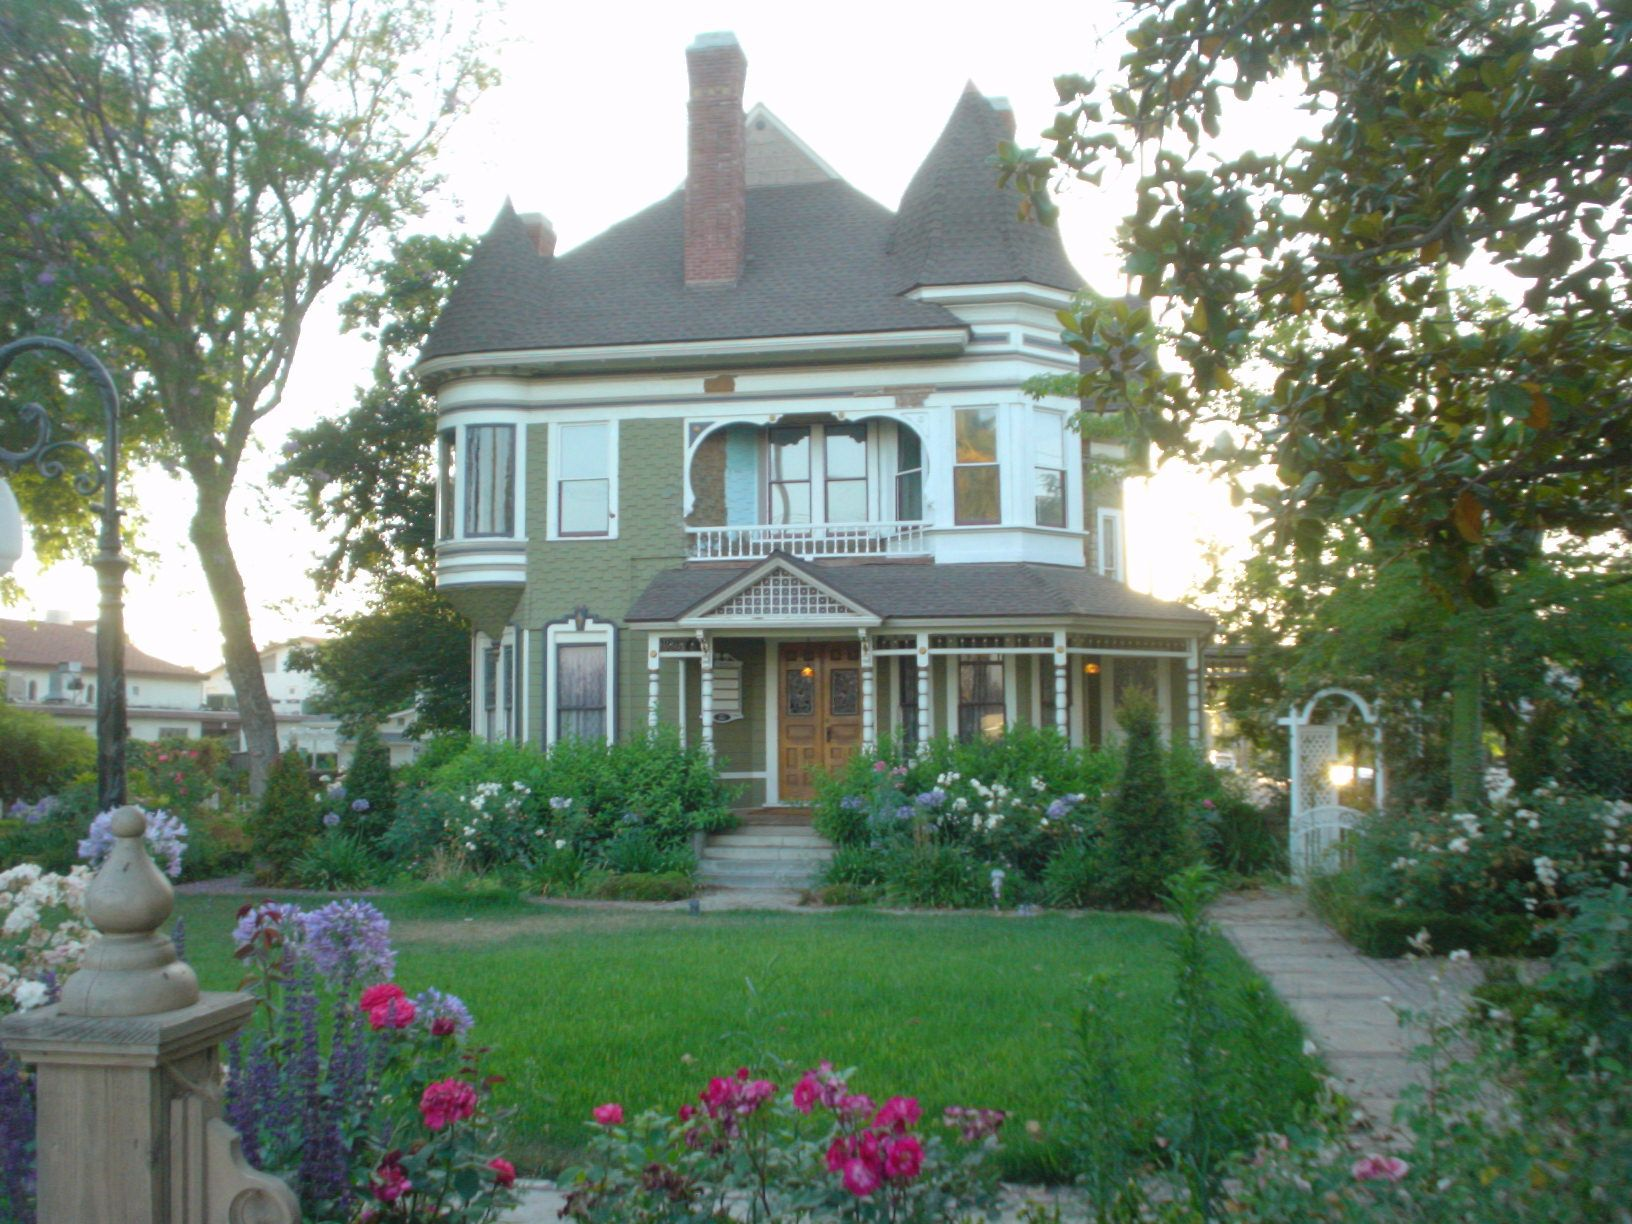 Victorian homes for sale in mississippi - Queen Anne Style Houses In Riverside Ca Usa